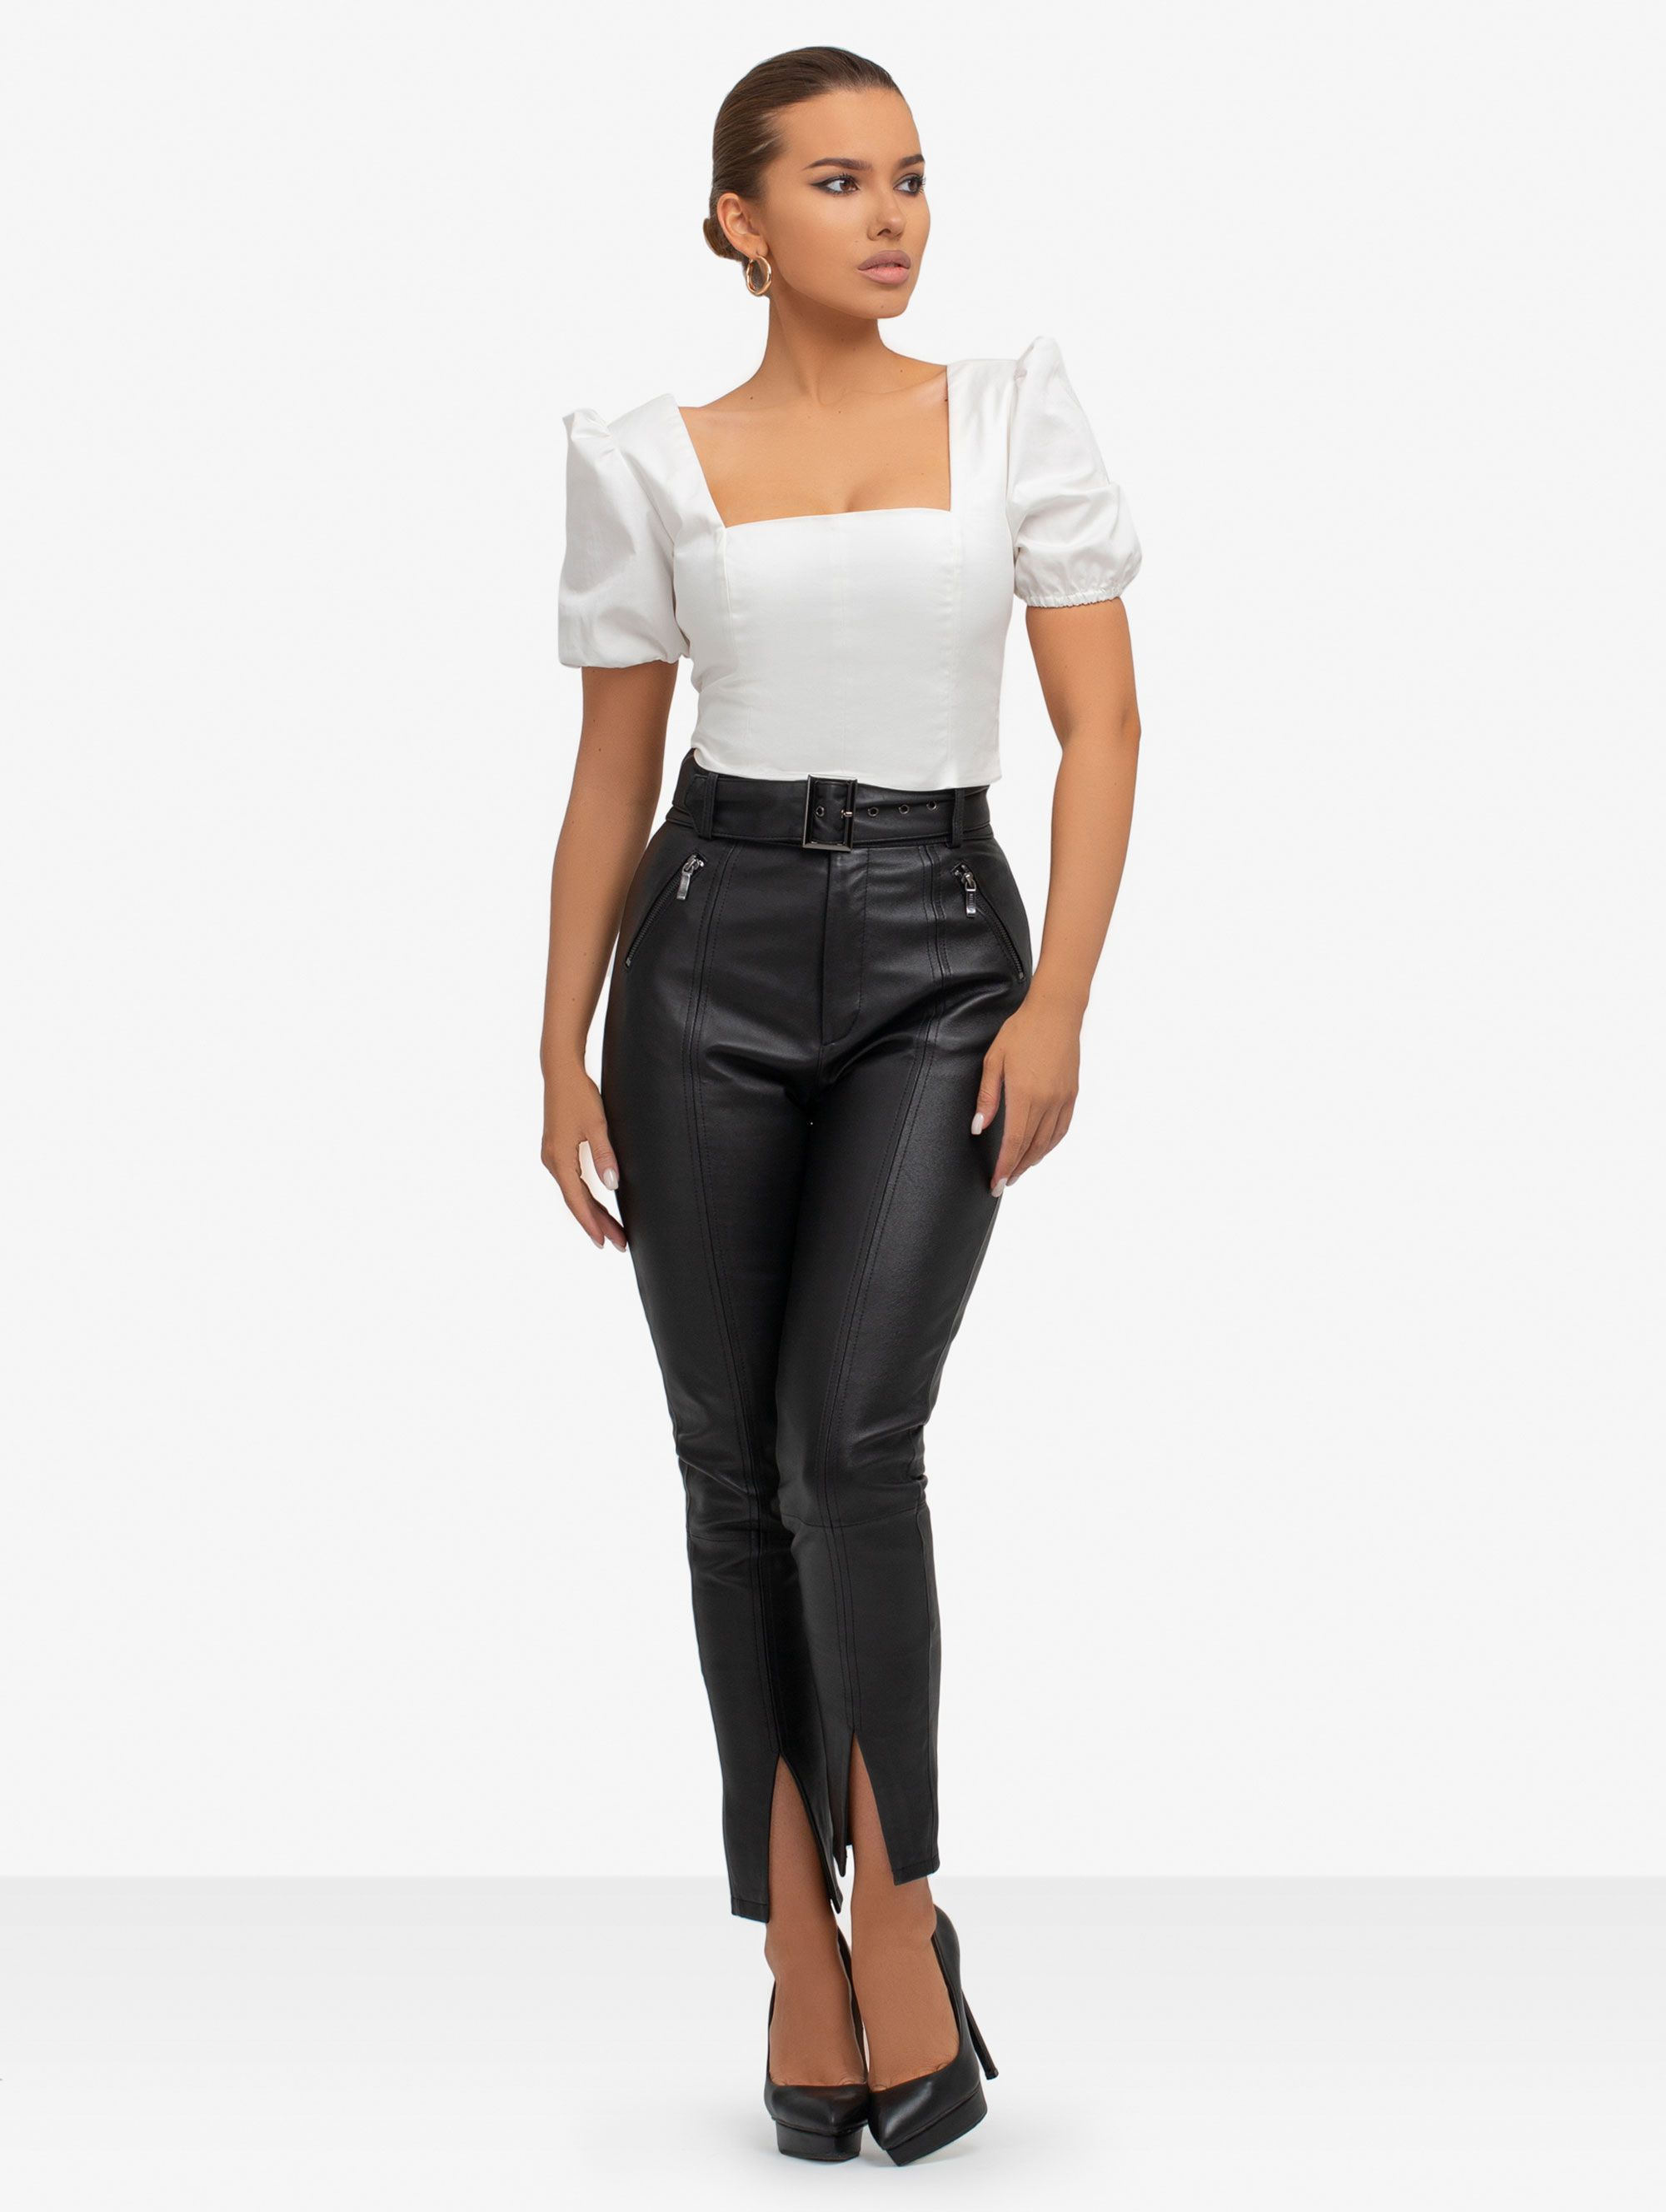 Misha Collection Stevie Shirting Top